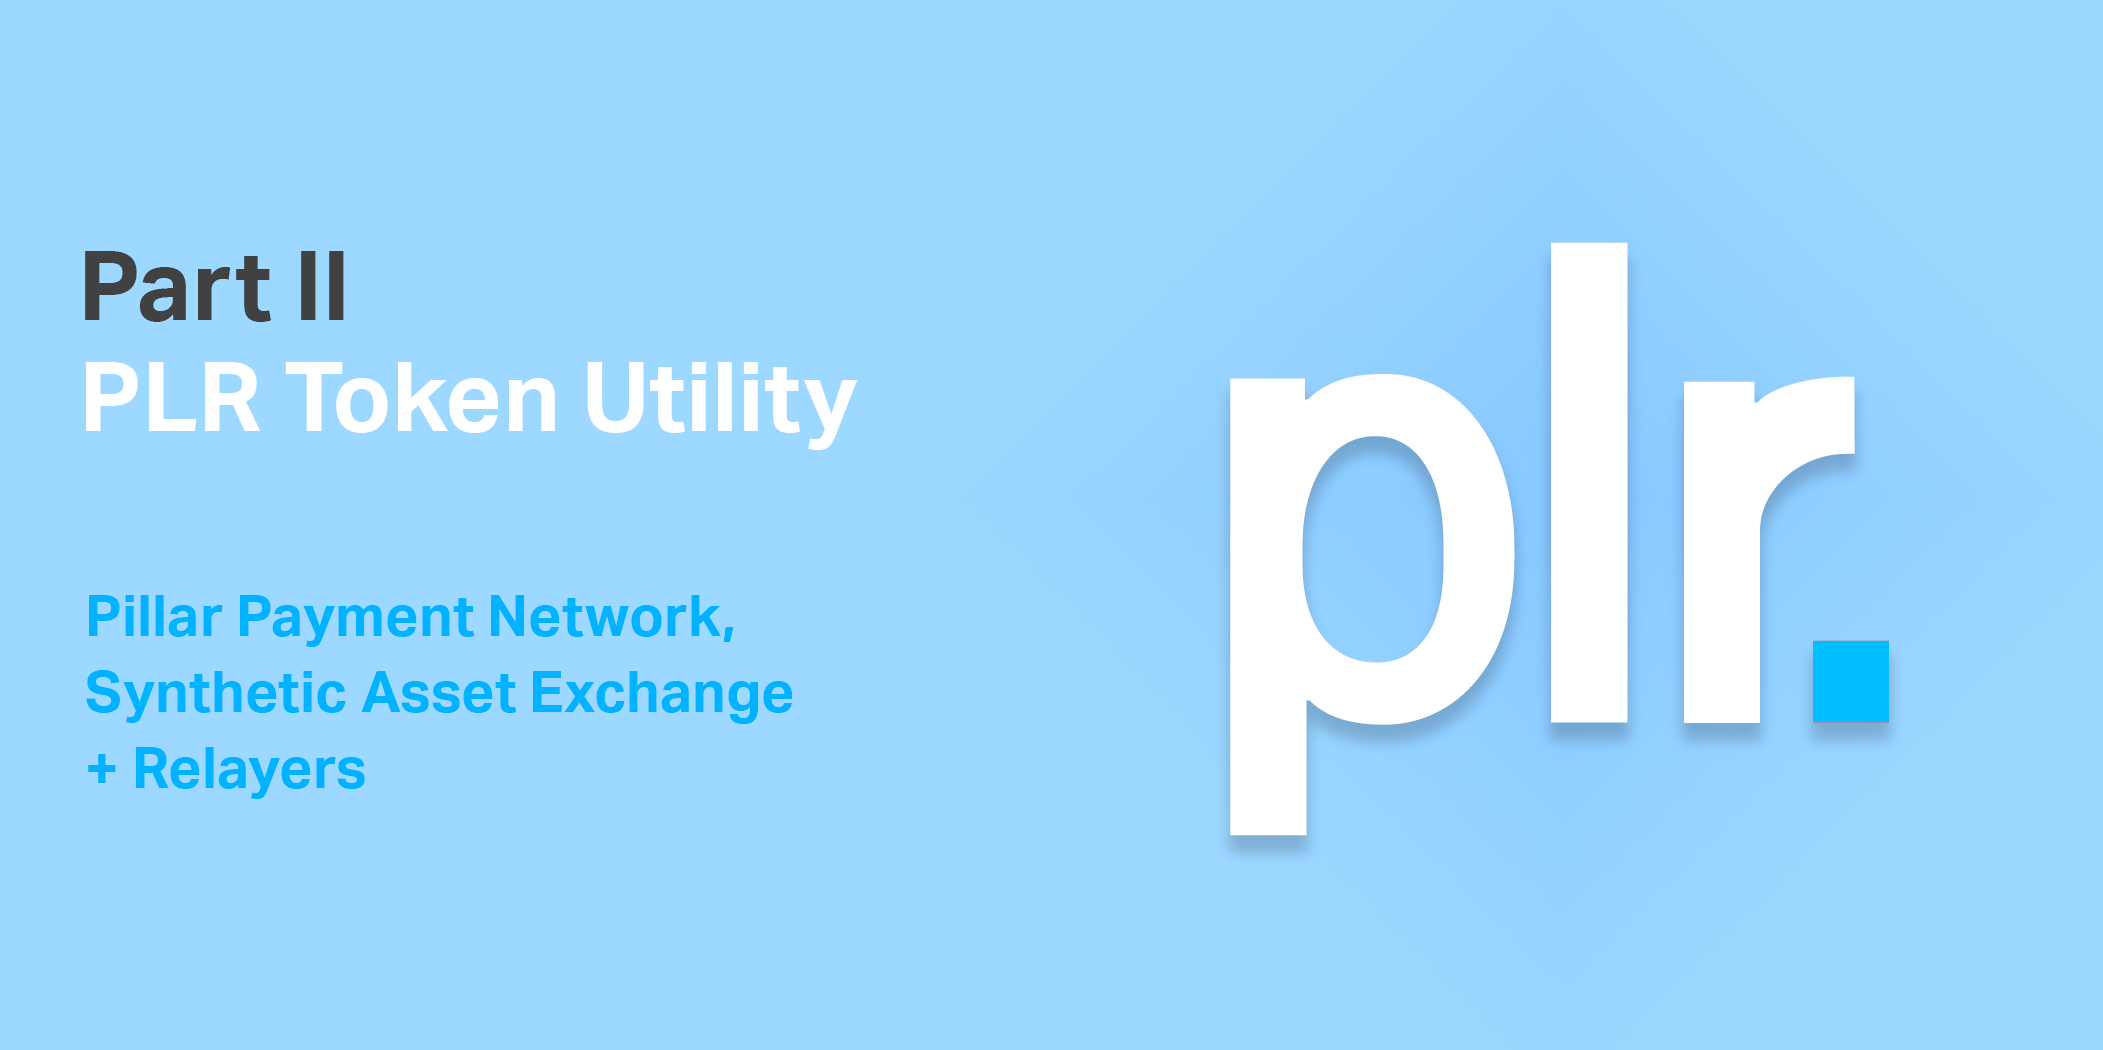 Understanding PLR Utility Part II: Pillar Payment Network, Synthetic Asset Exchange + Relayers